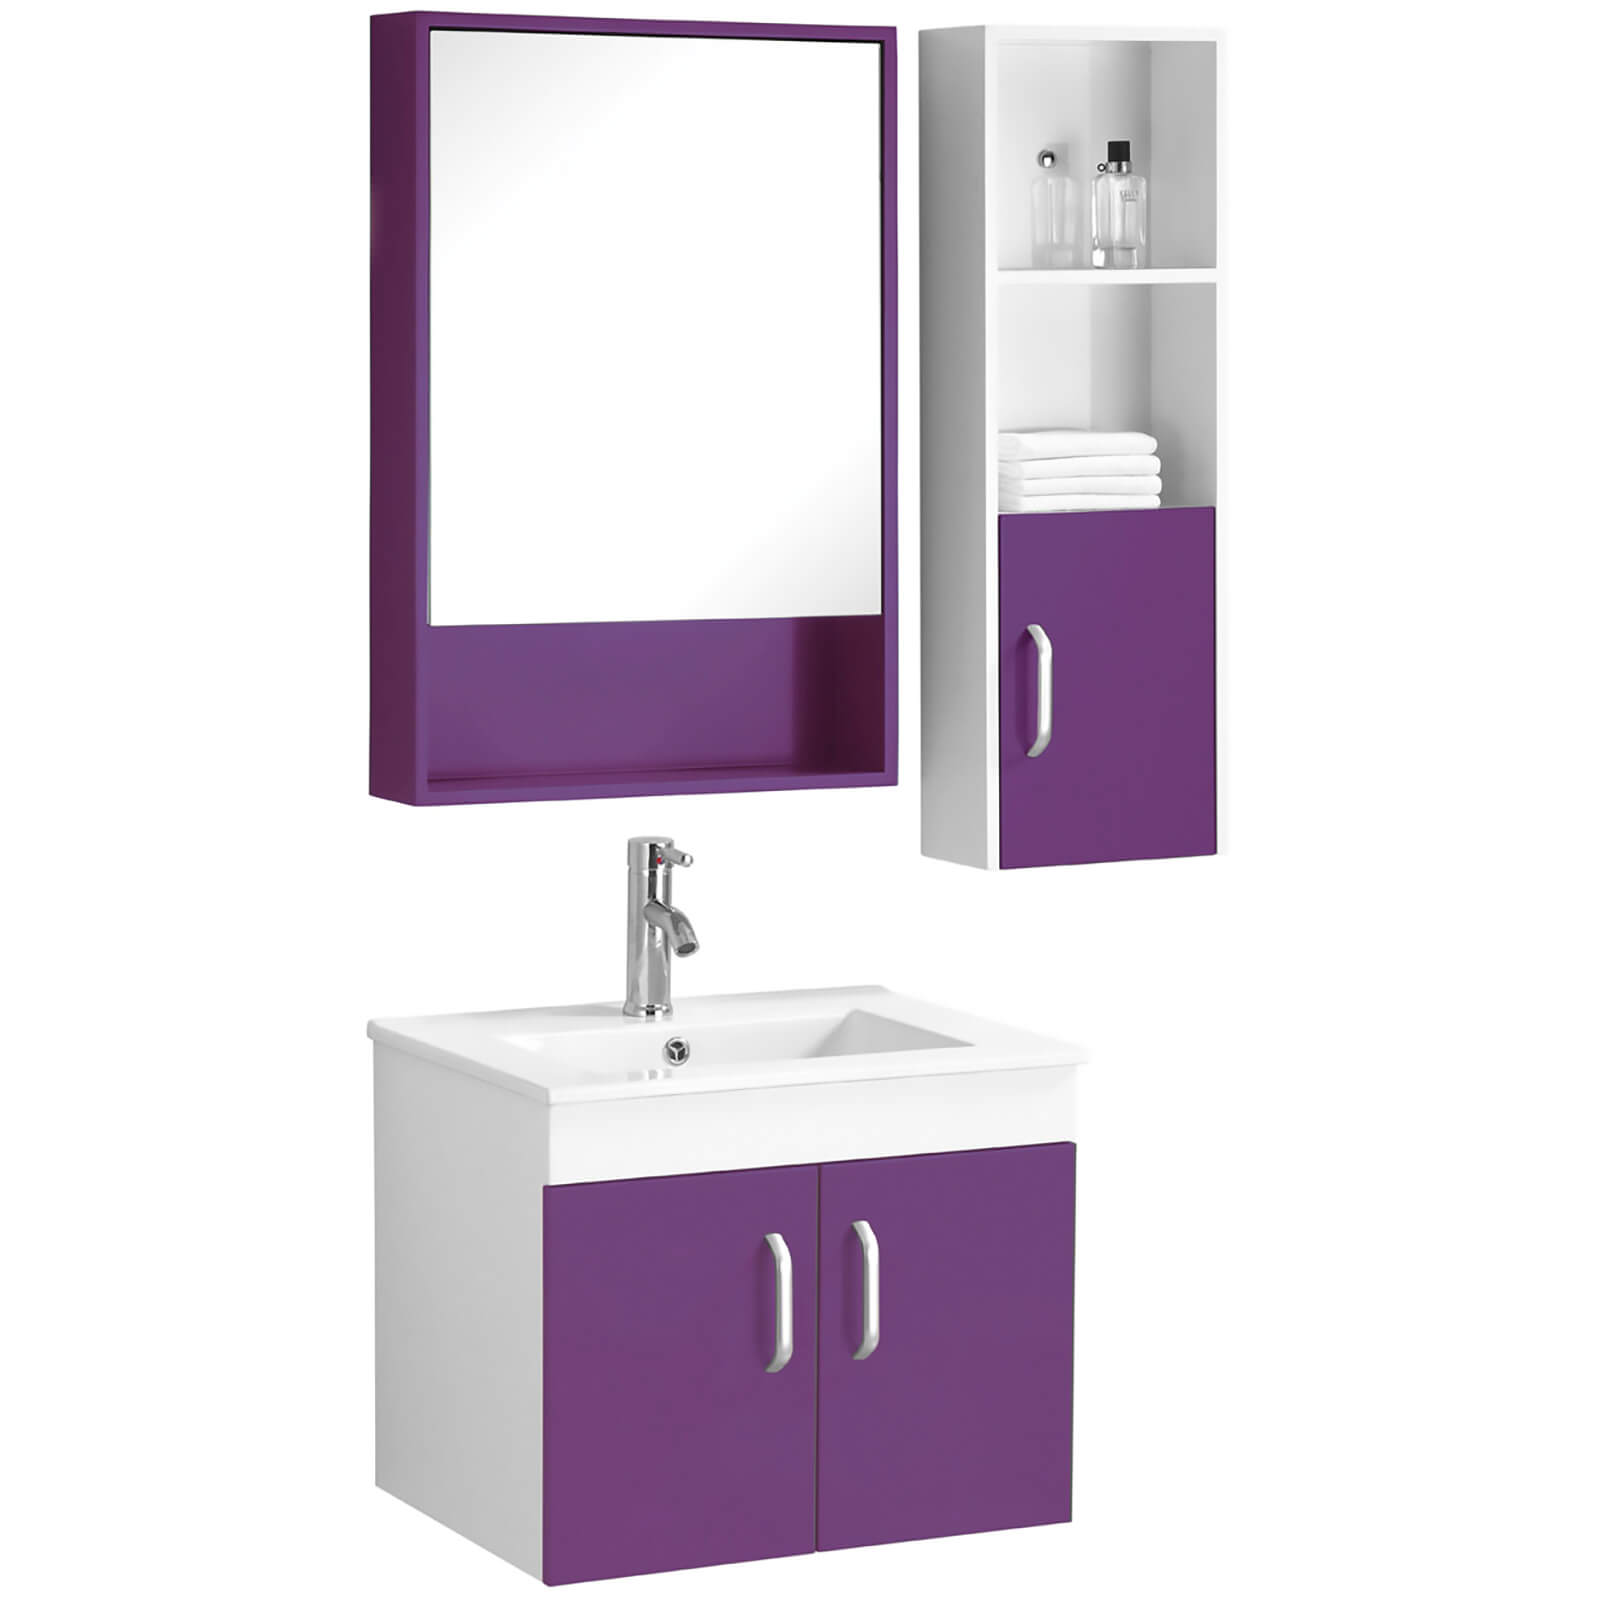 Beaumont Basin, Under Sink Cabinet, Mirrored Cabinet and Side Cabinet Set - Purple/White High Gloss